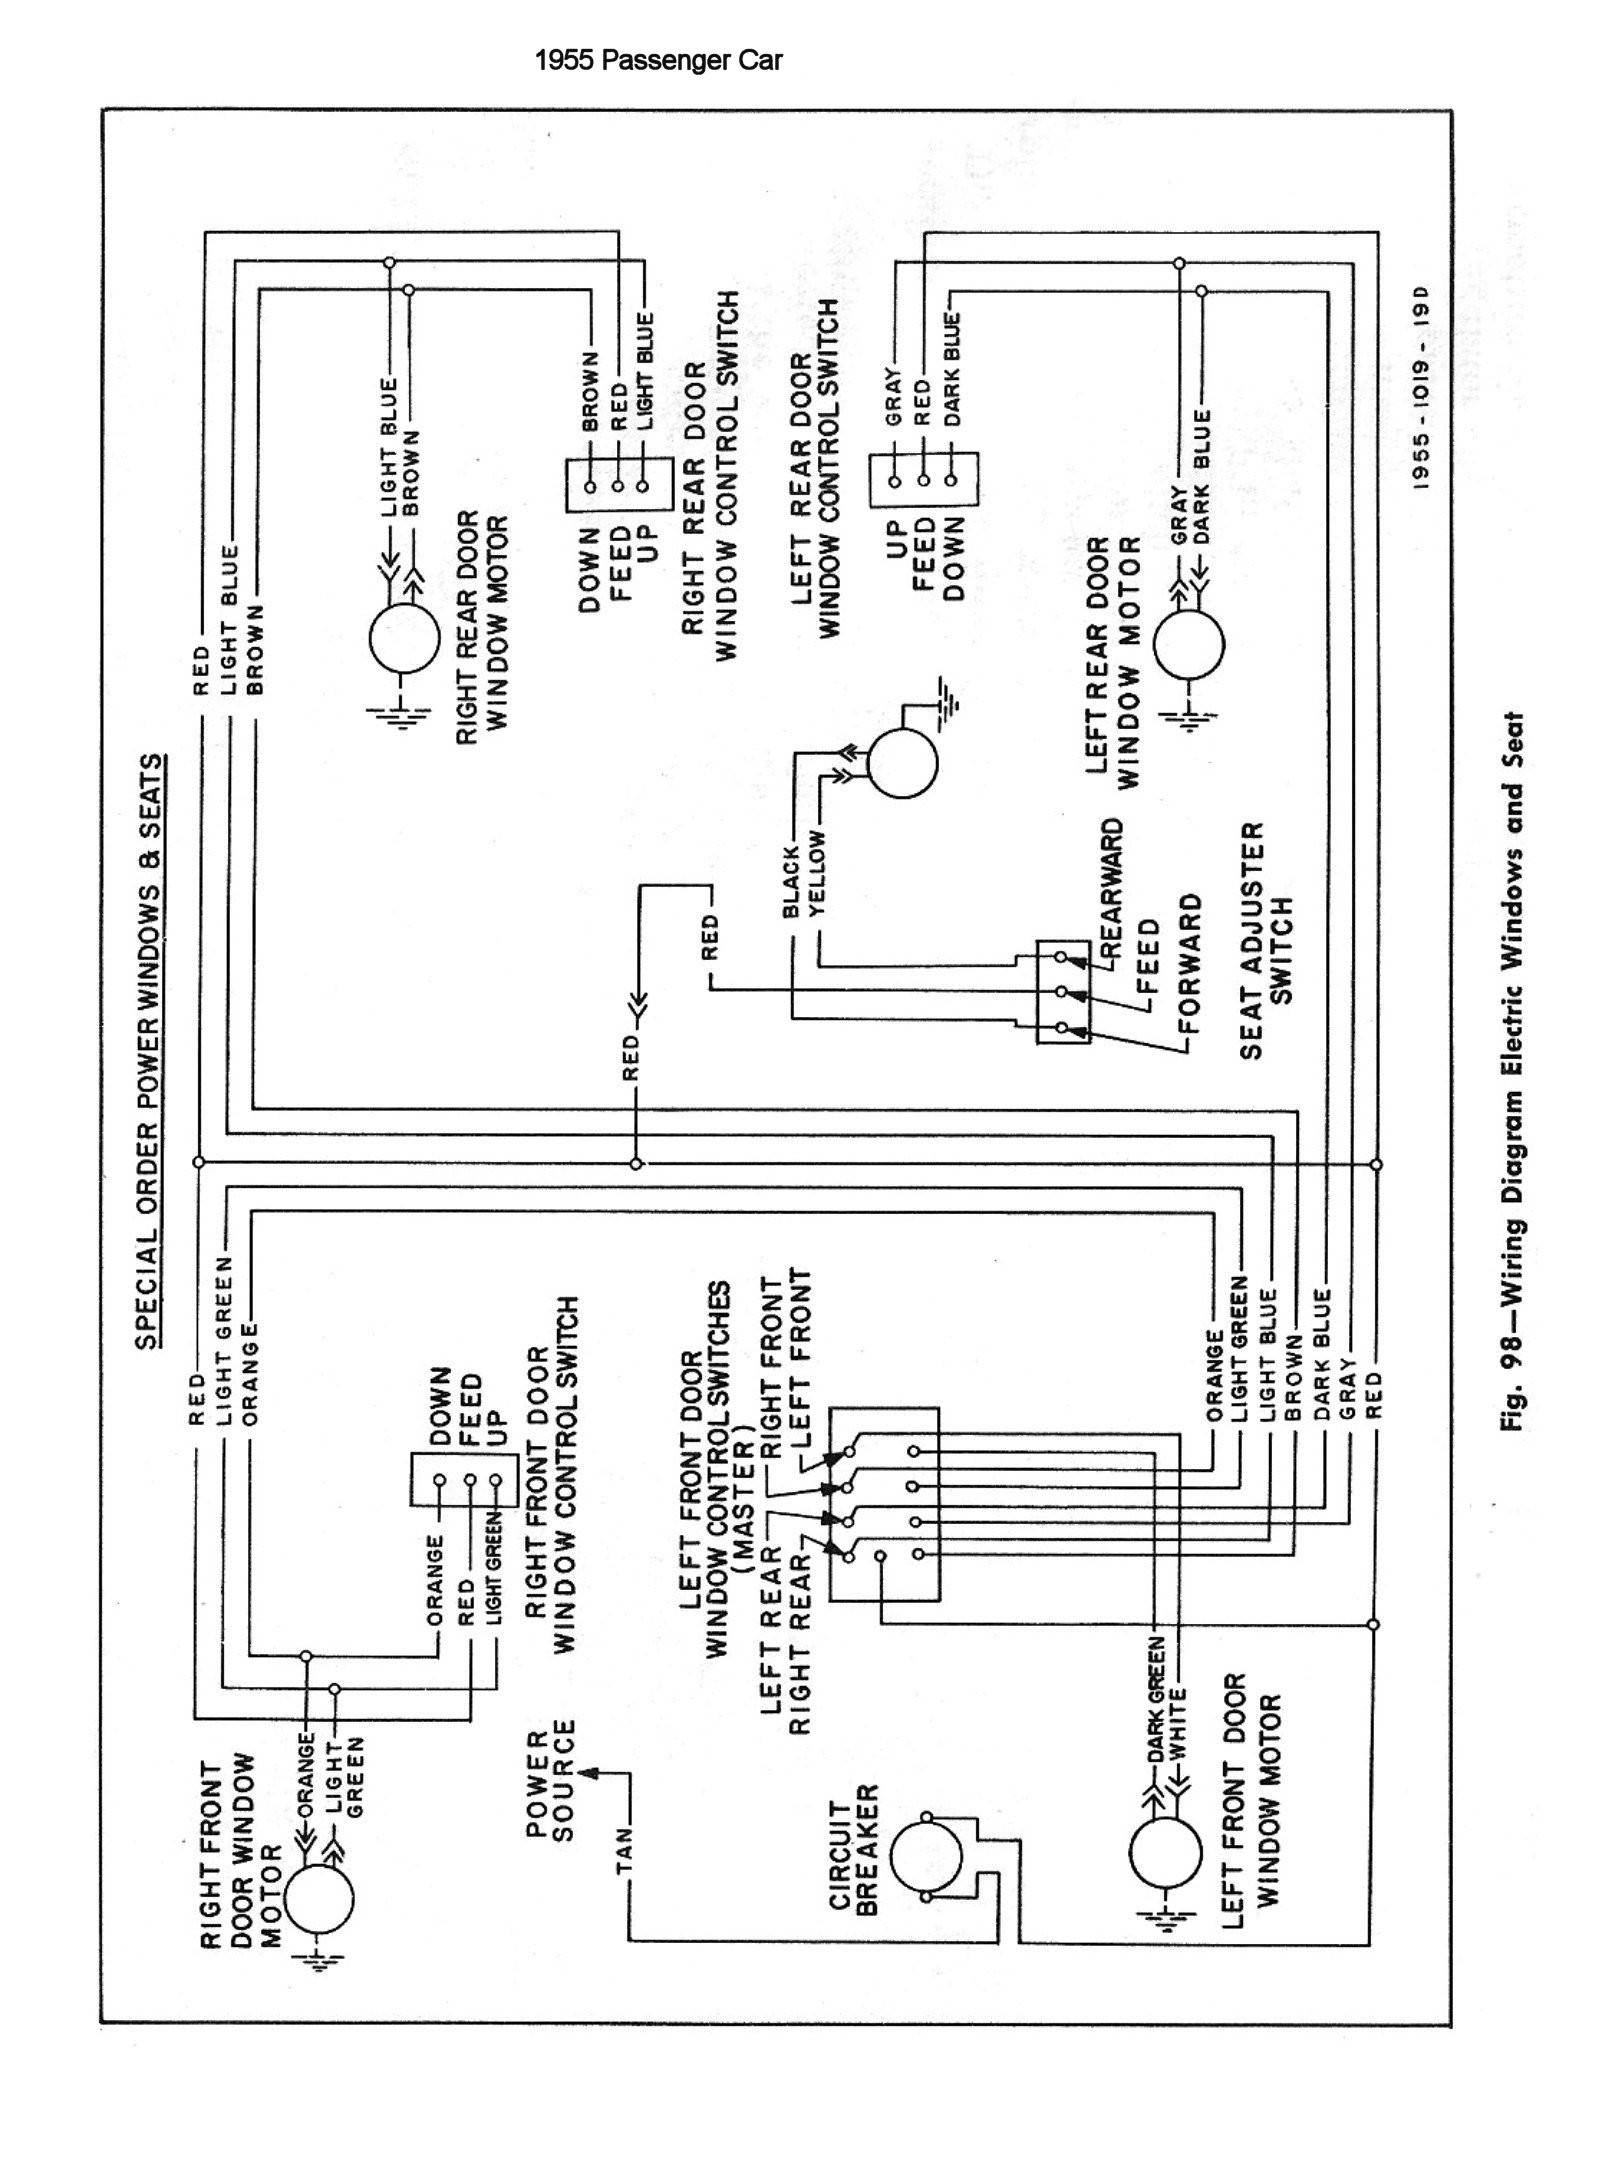 Chevy Truck Ignition Wiring Diagram